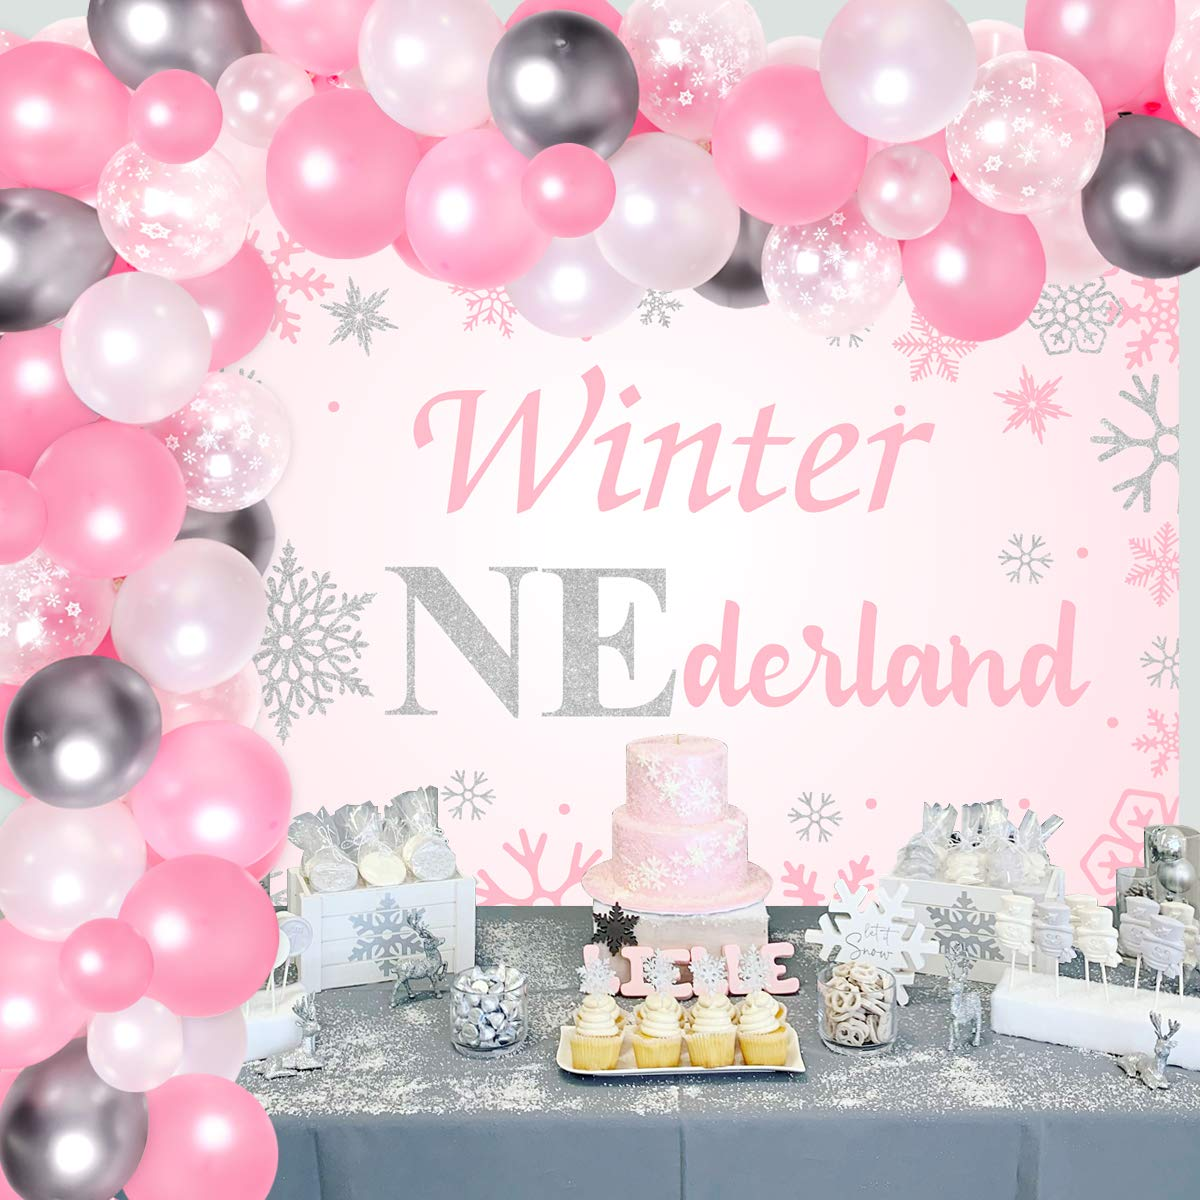 Winter Onederland Birthday Decorations for Girl Backdrop, Snowflake Balloon Garland Kit for Wonderland 1st Birthday Party Supplies Pink Silver and White 79 Pcs